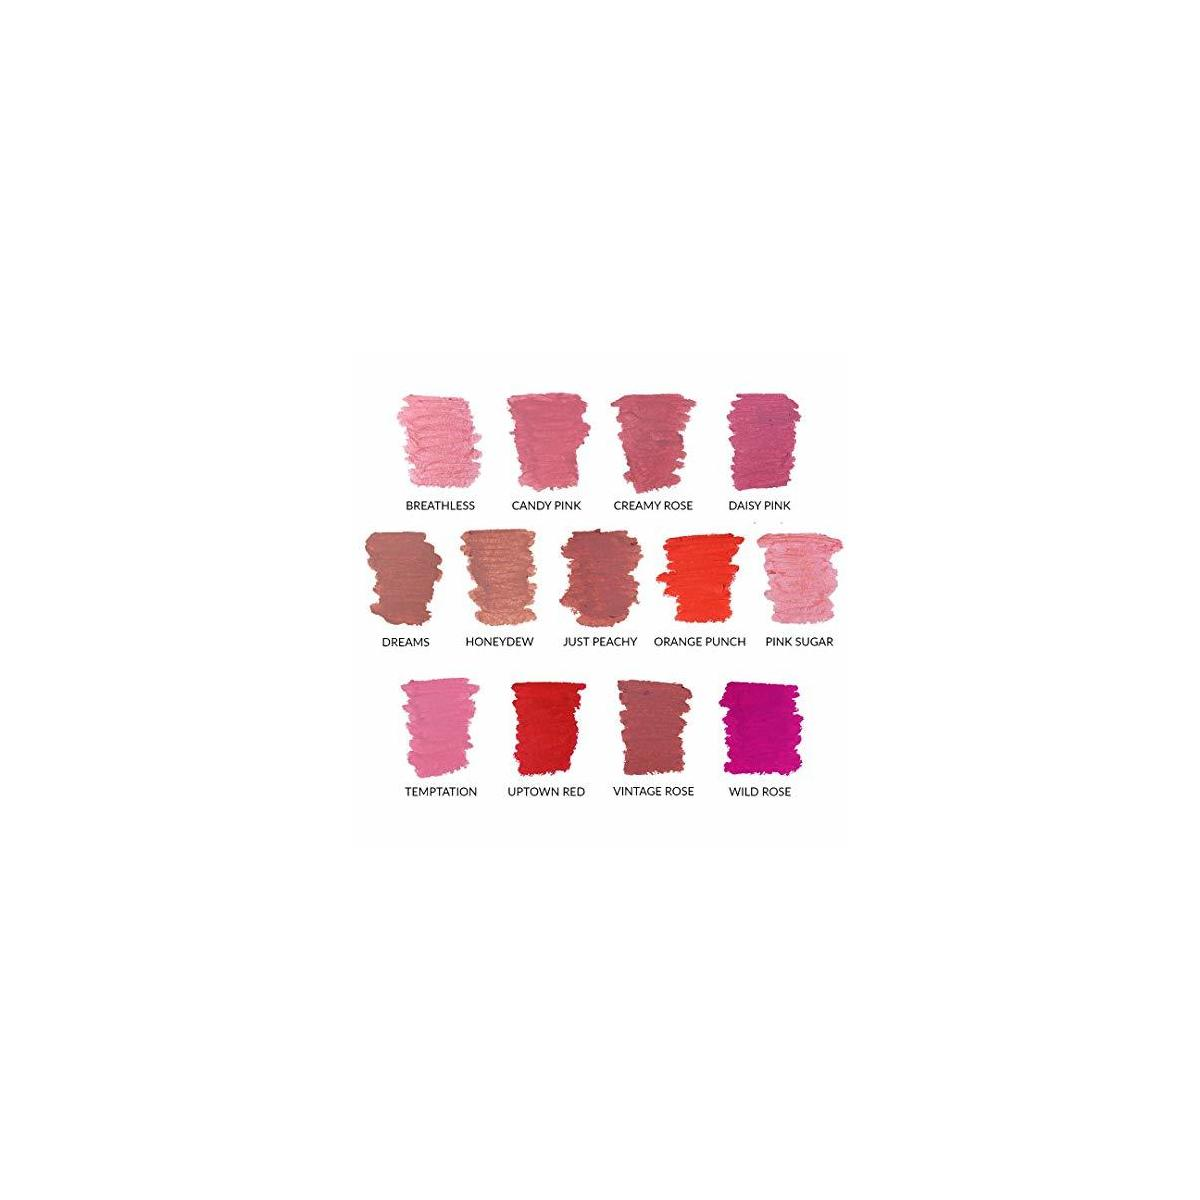 Super Moisture Lipstick by True + Luscious - Clean Formula, Smooth and Hydrating - Vegan and Cruelty Free Lipstick, Non Toxic and Lead Free Shade: Temptation - 0.12 oz